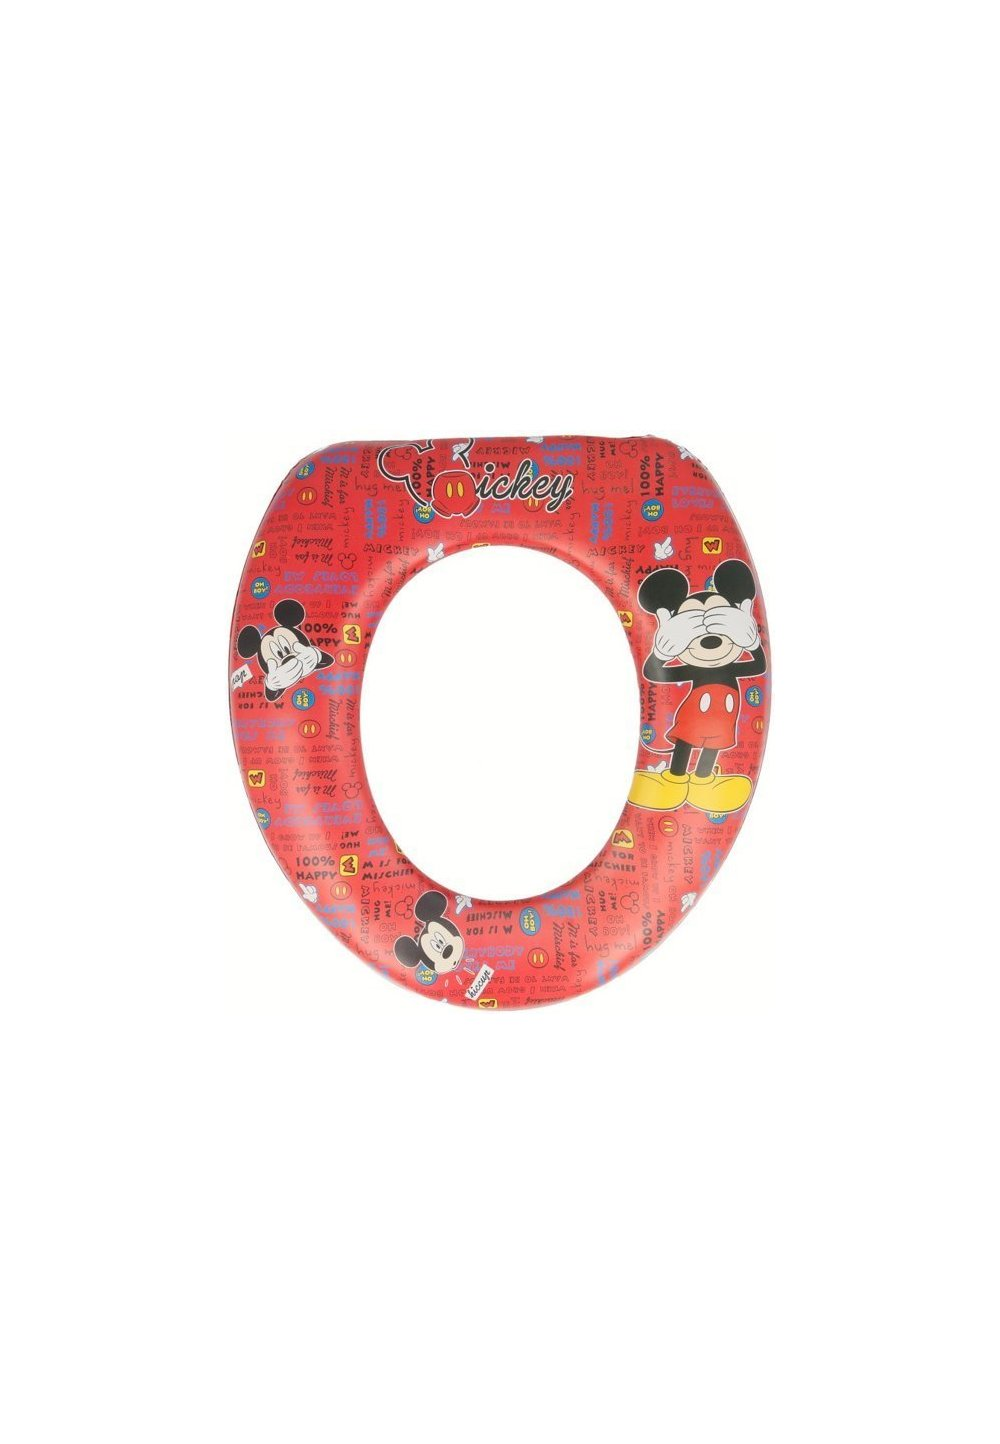 Reductor wc mini, M is for Mickey imagine